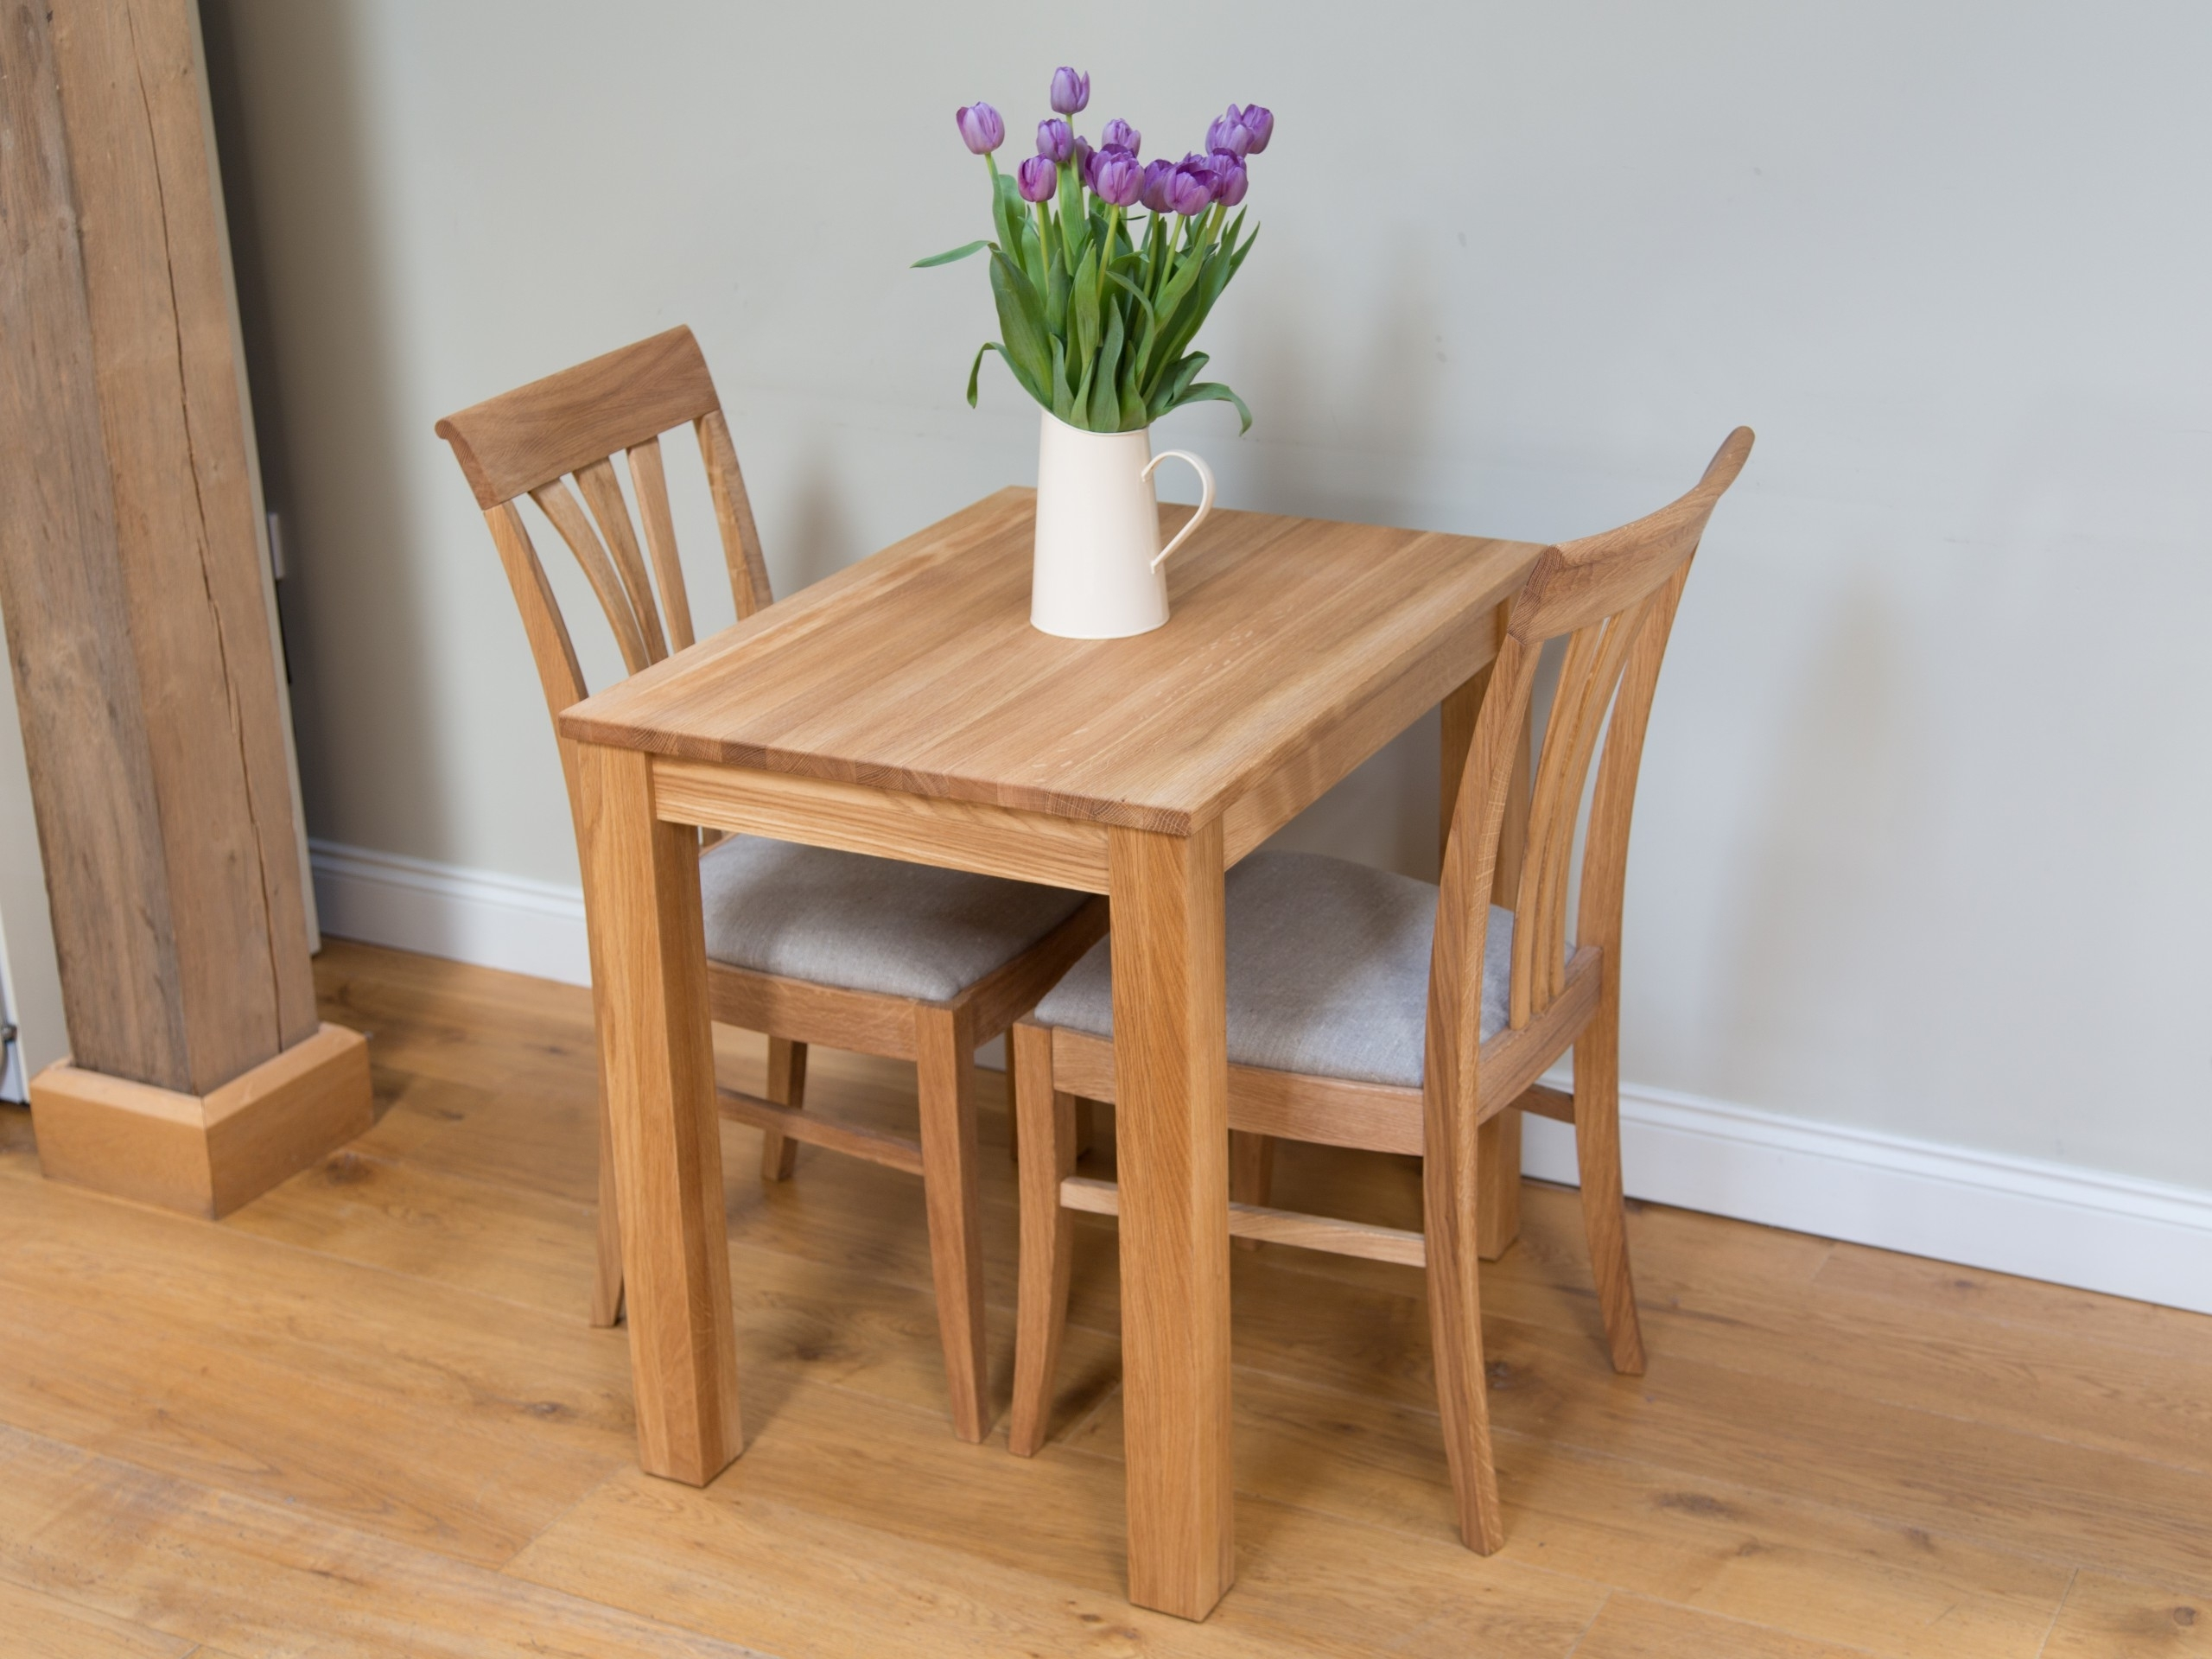 Two Person Dining Tables Intended For Widely Used Oak Kitchen Table Chair Dining Set From Top Furniture, At A Table (View 15 of 25)